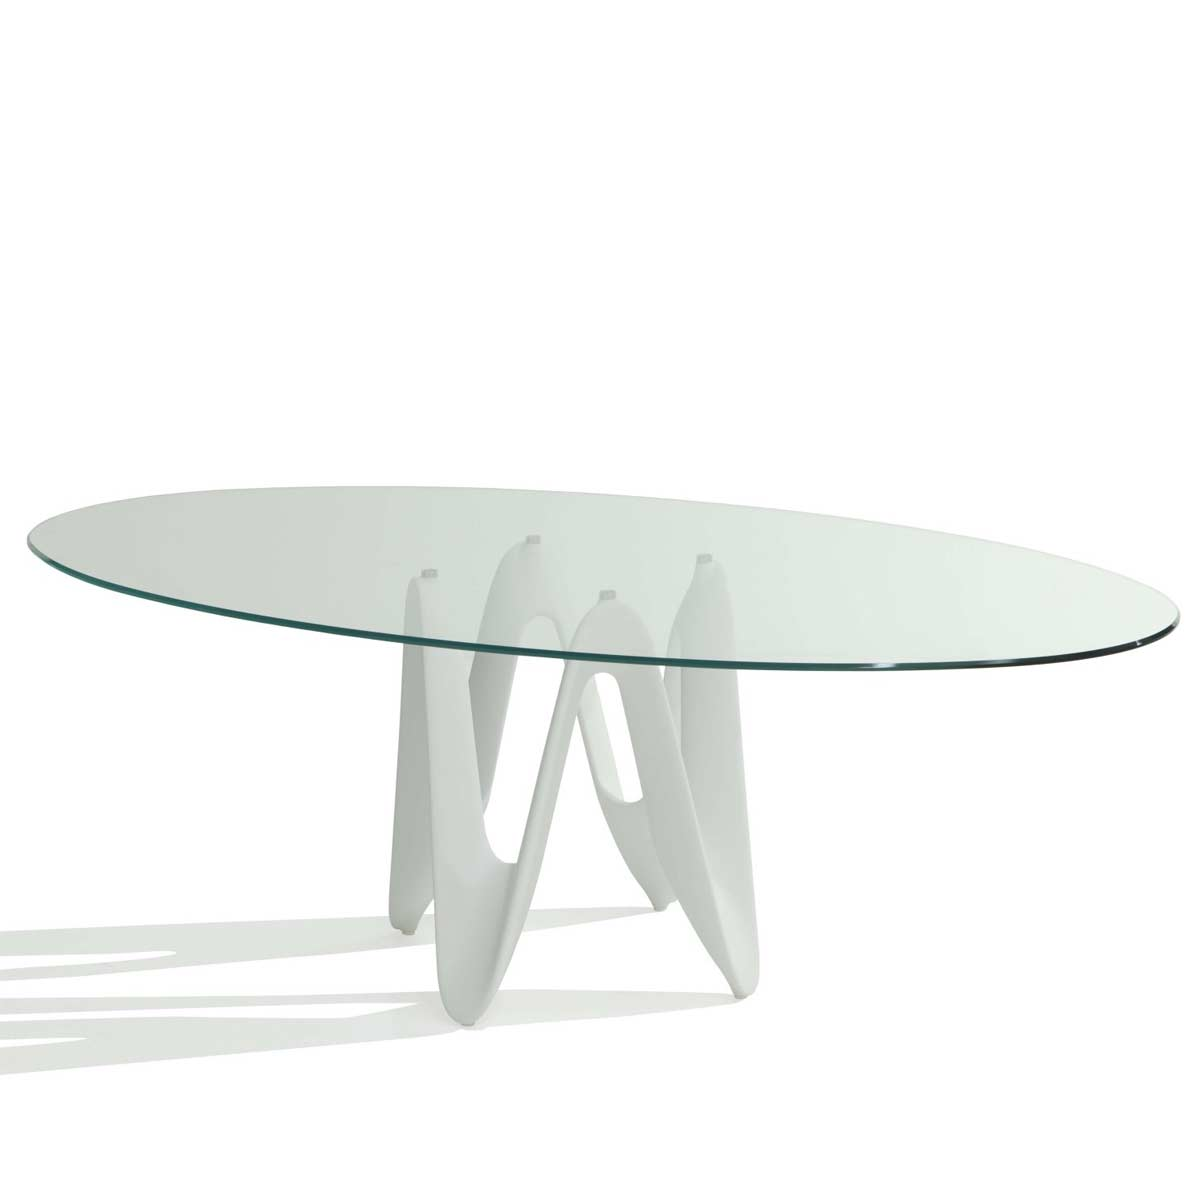 Lambda Oval Glass Dining Table Klarity Glass Furniture : oval glass dining table lambda from glassfurniture.co.uk size 1200 x 1200 jpeg 19kB